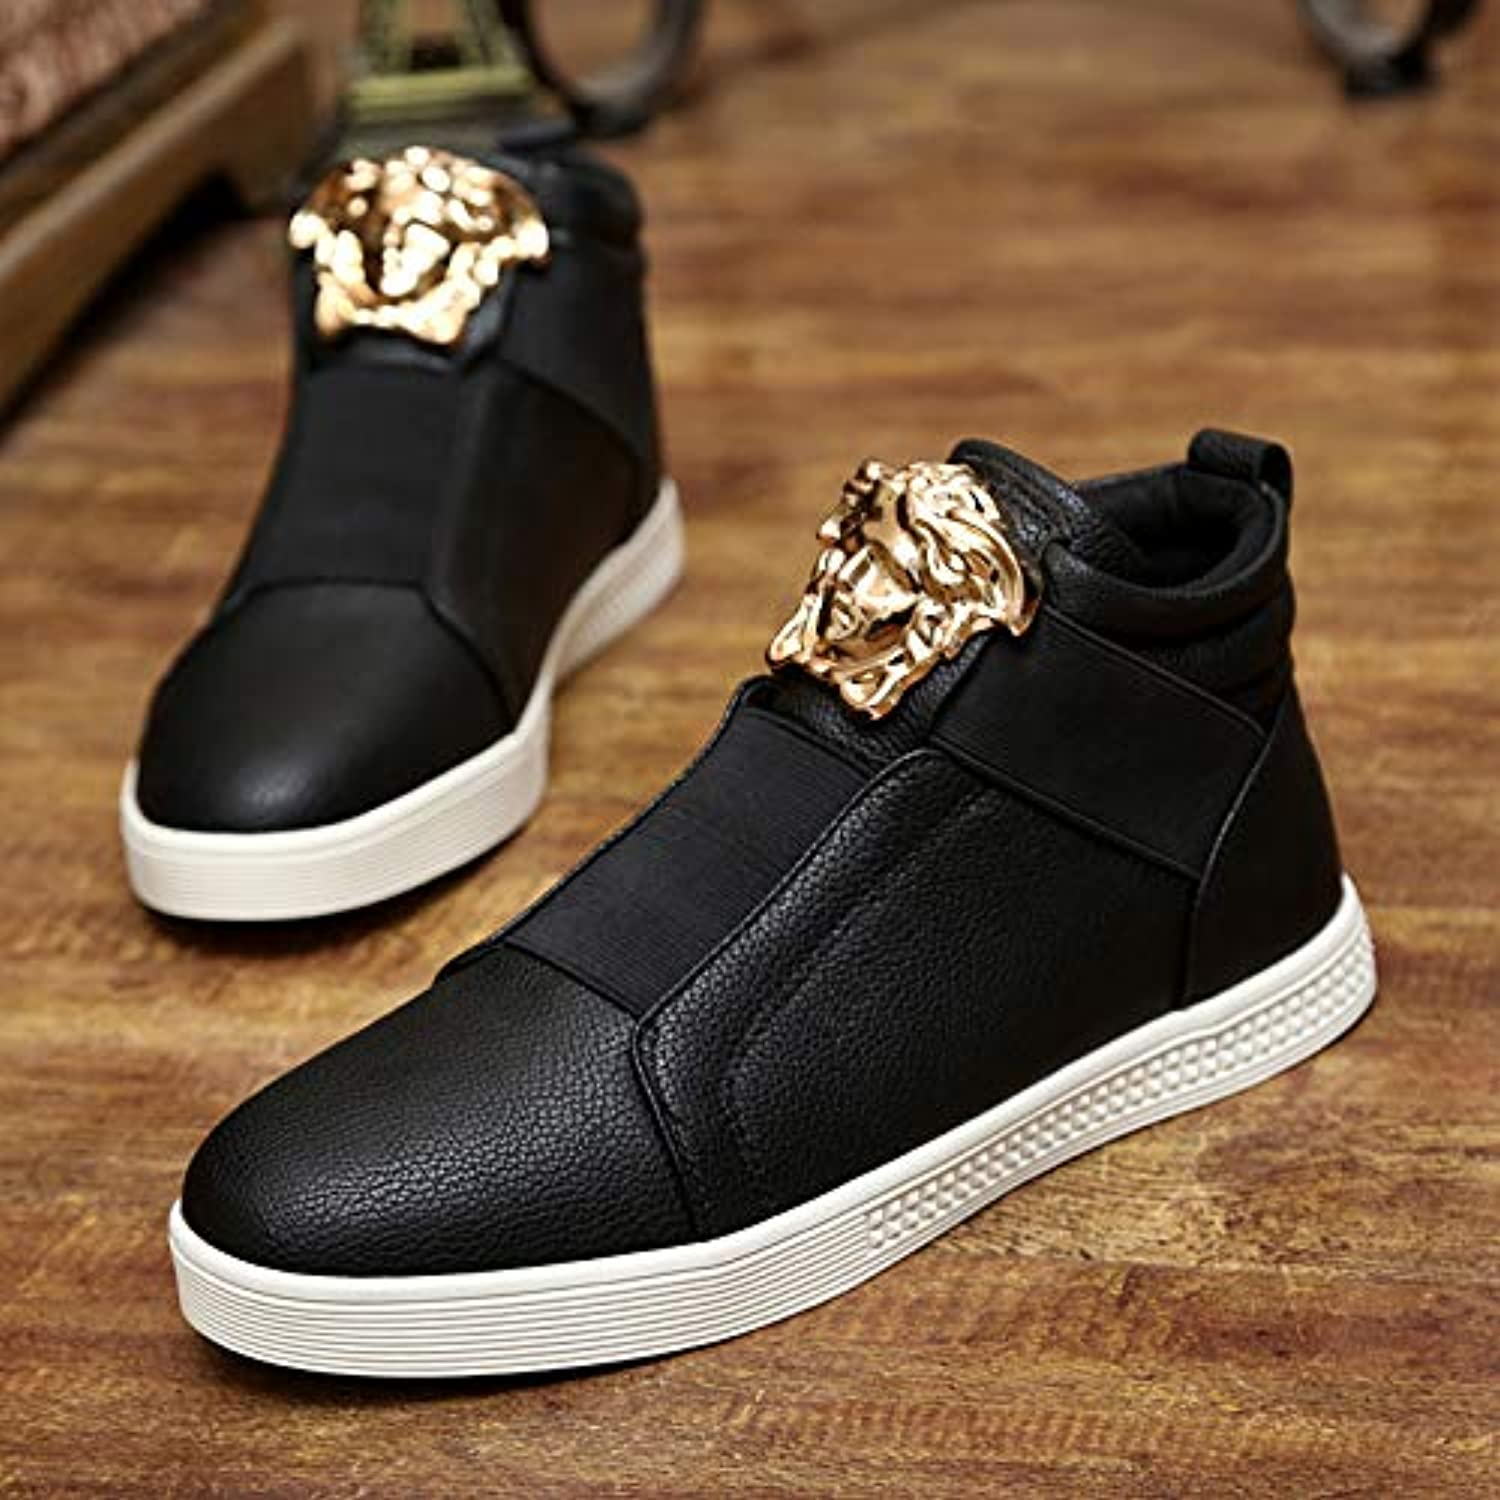 LOVDRAM Boots Men's Autumn And Winter Men'S Short Boots Youth shoes High Help Martin Boots High Junior High School Students White Casual Men'S shoes